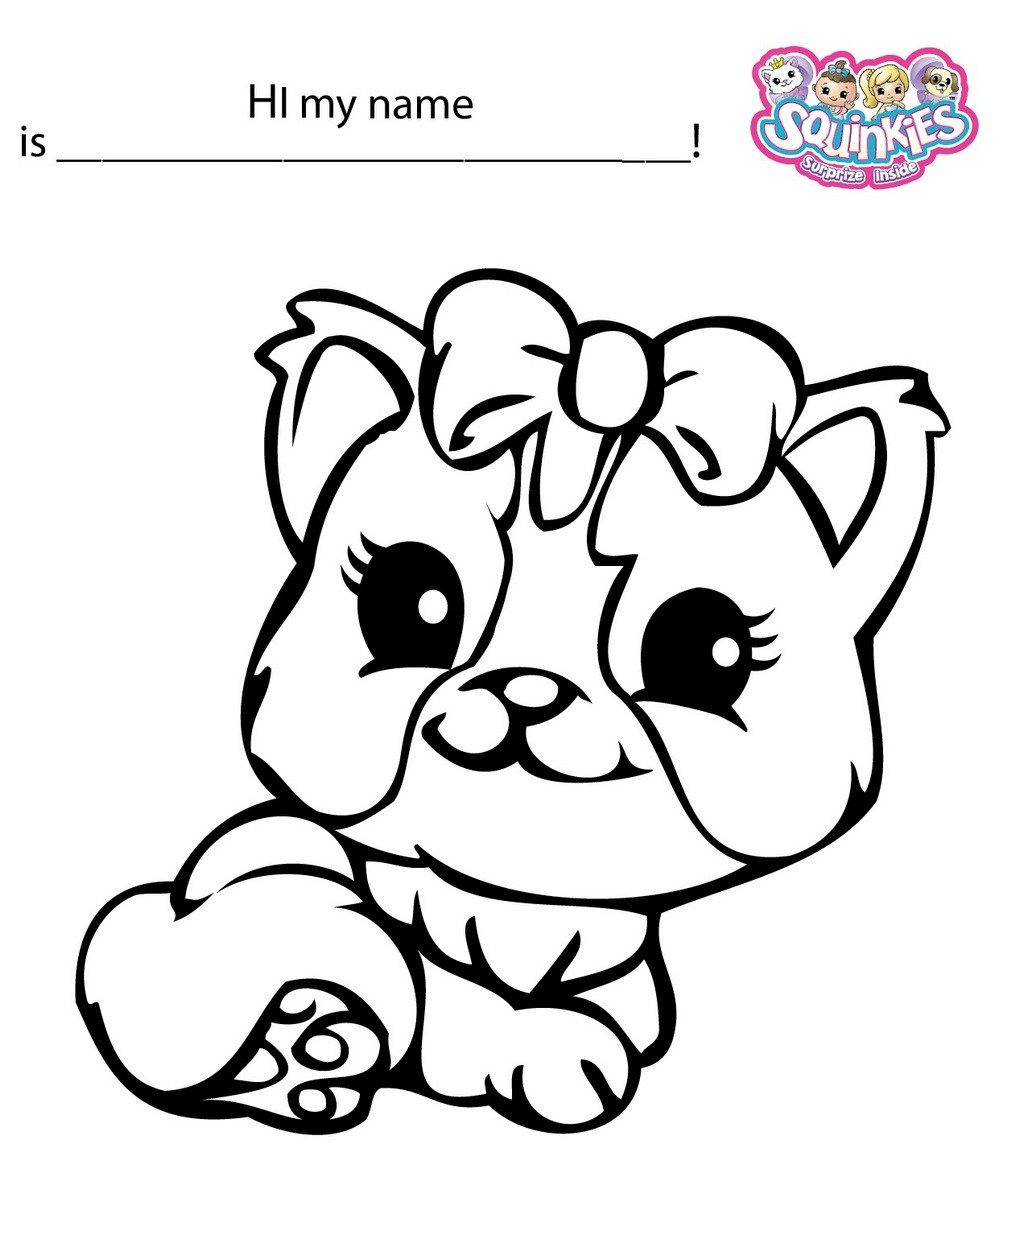 10 Best Super Cute Squinkies Coloring Book For Girls And Boys